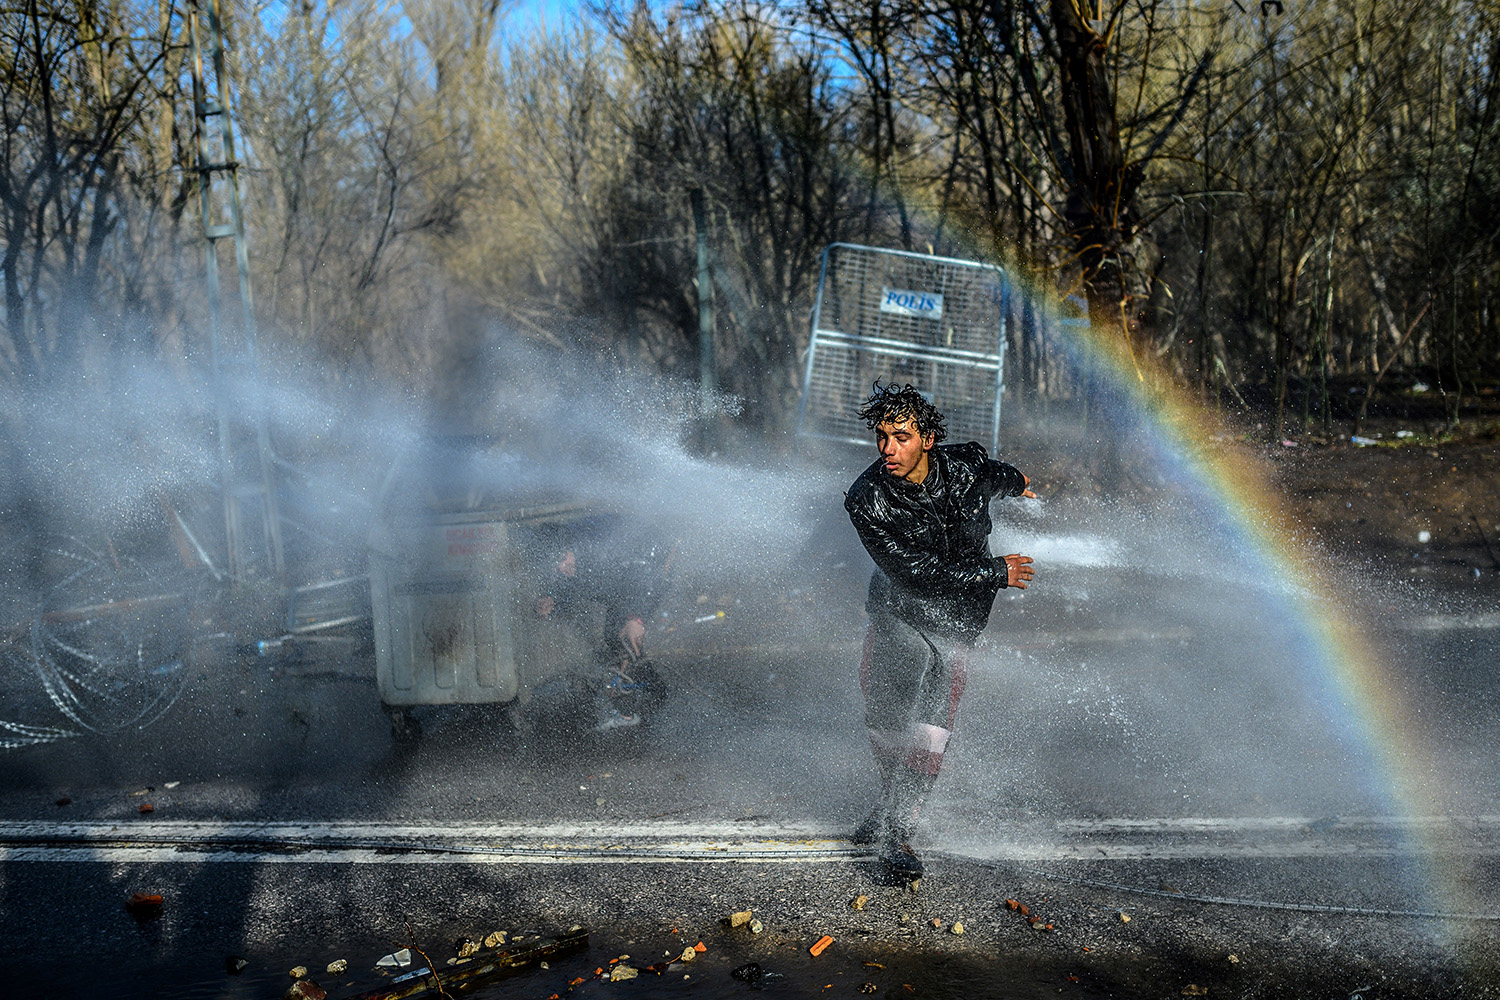 A migrant runs away and another takes cover behind a trash container as Greek police use water cannons to block them from breaking fences at the Turkey-Greece border in Edirne, Turkey, on March 7. BULENT KILIC/AFP via Getty Images